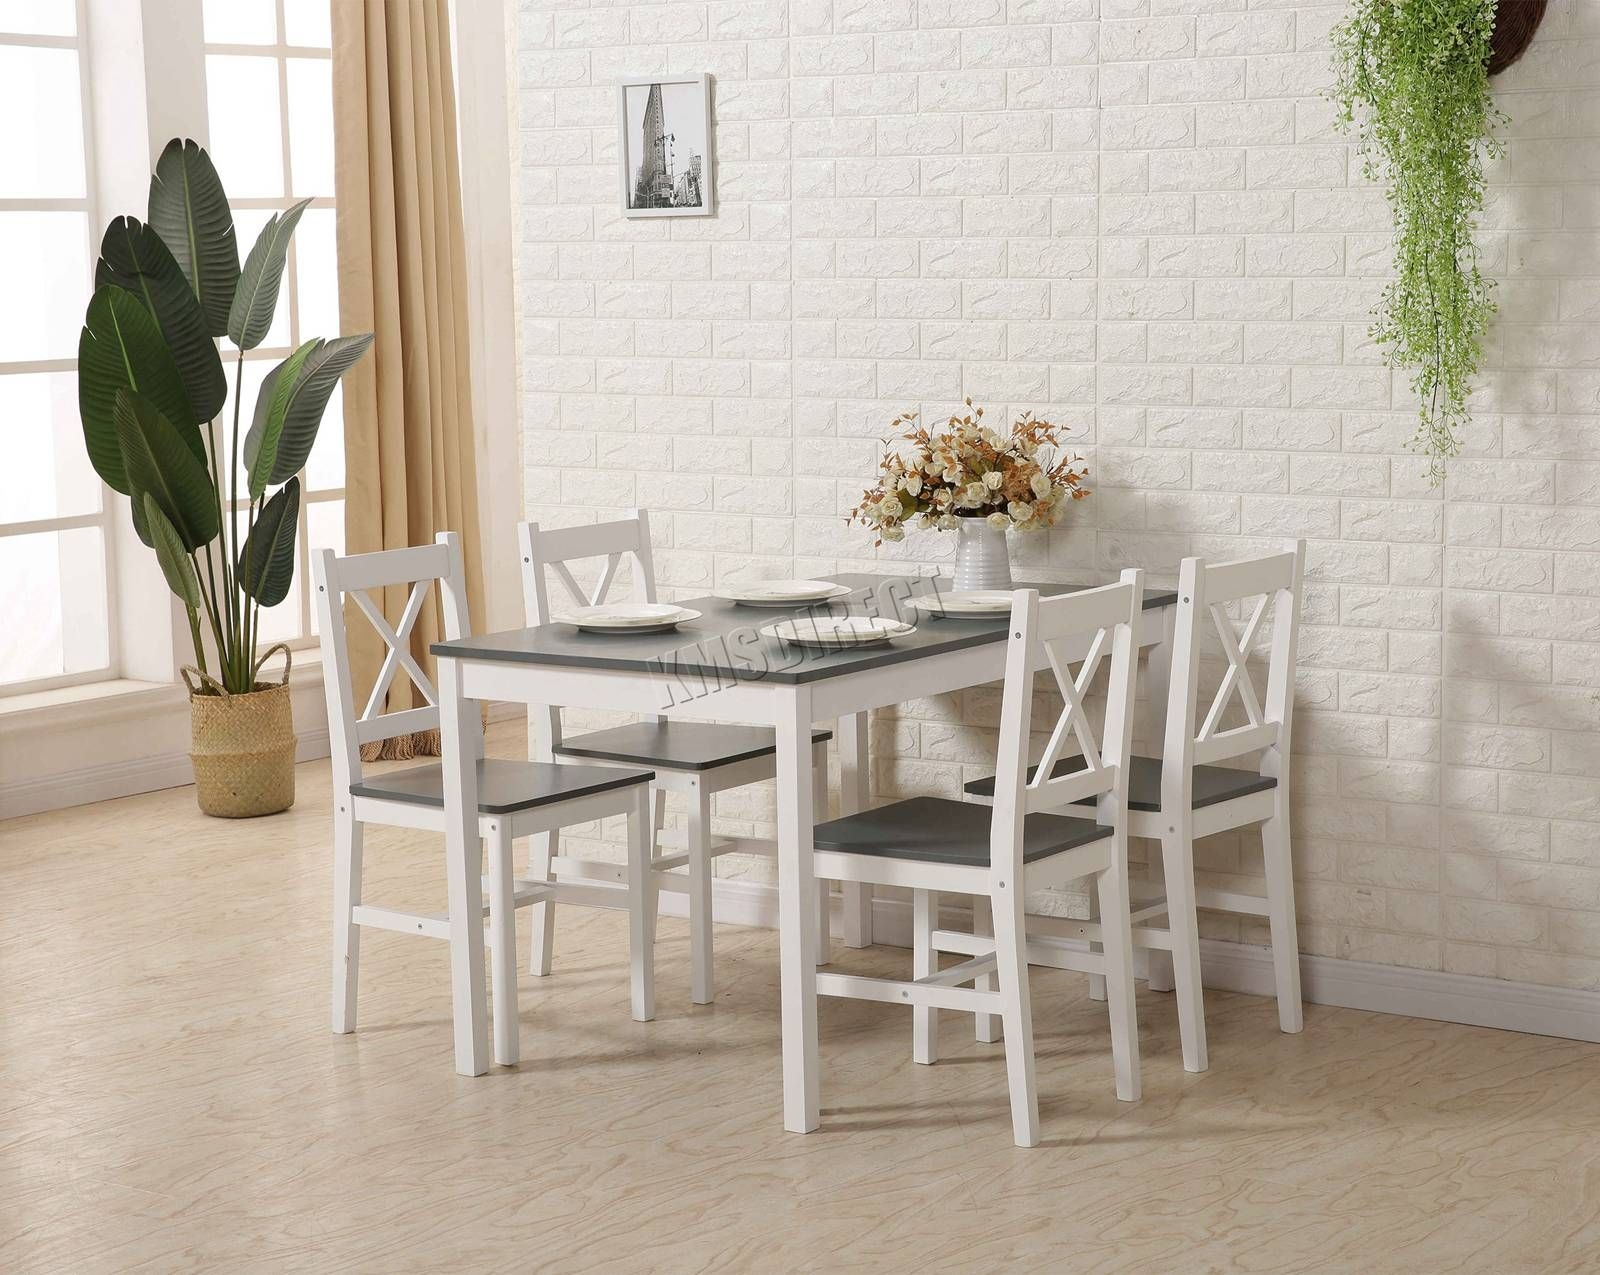 Westwood Quality Solid Wooden Dining Table And 4 Chairs Set Kitchen Home Ds03  Ebay